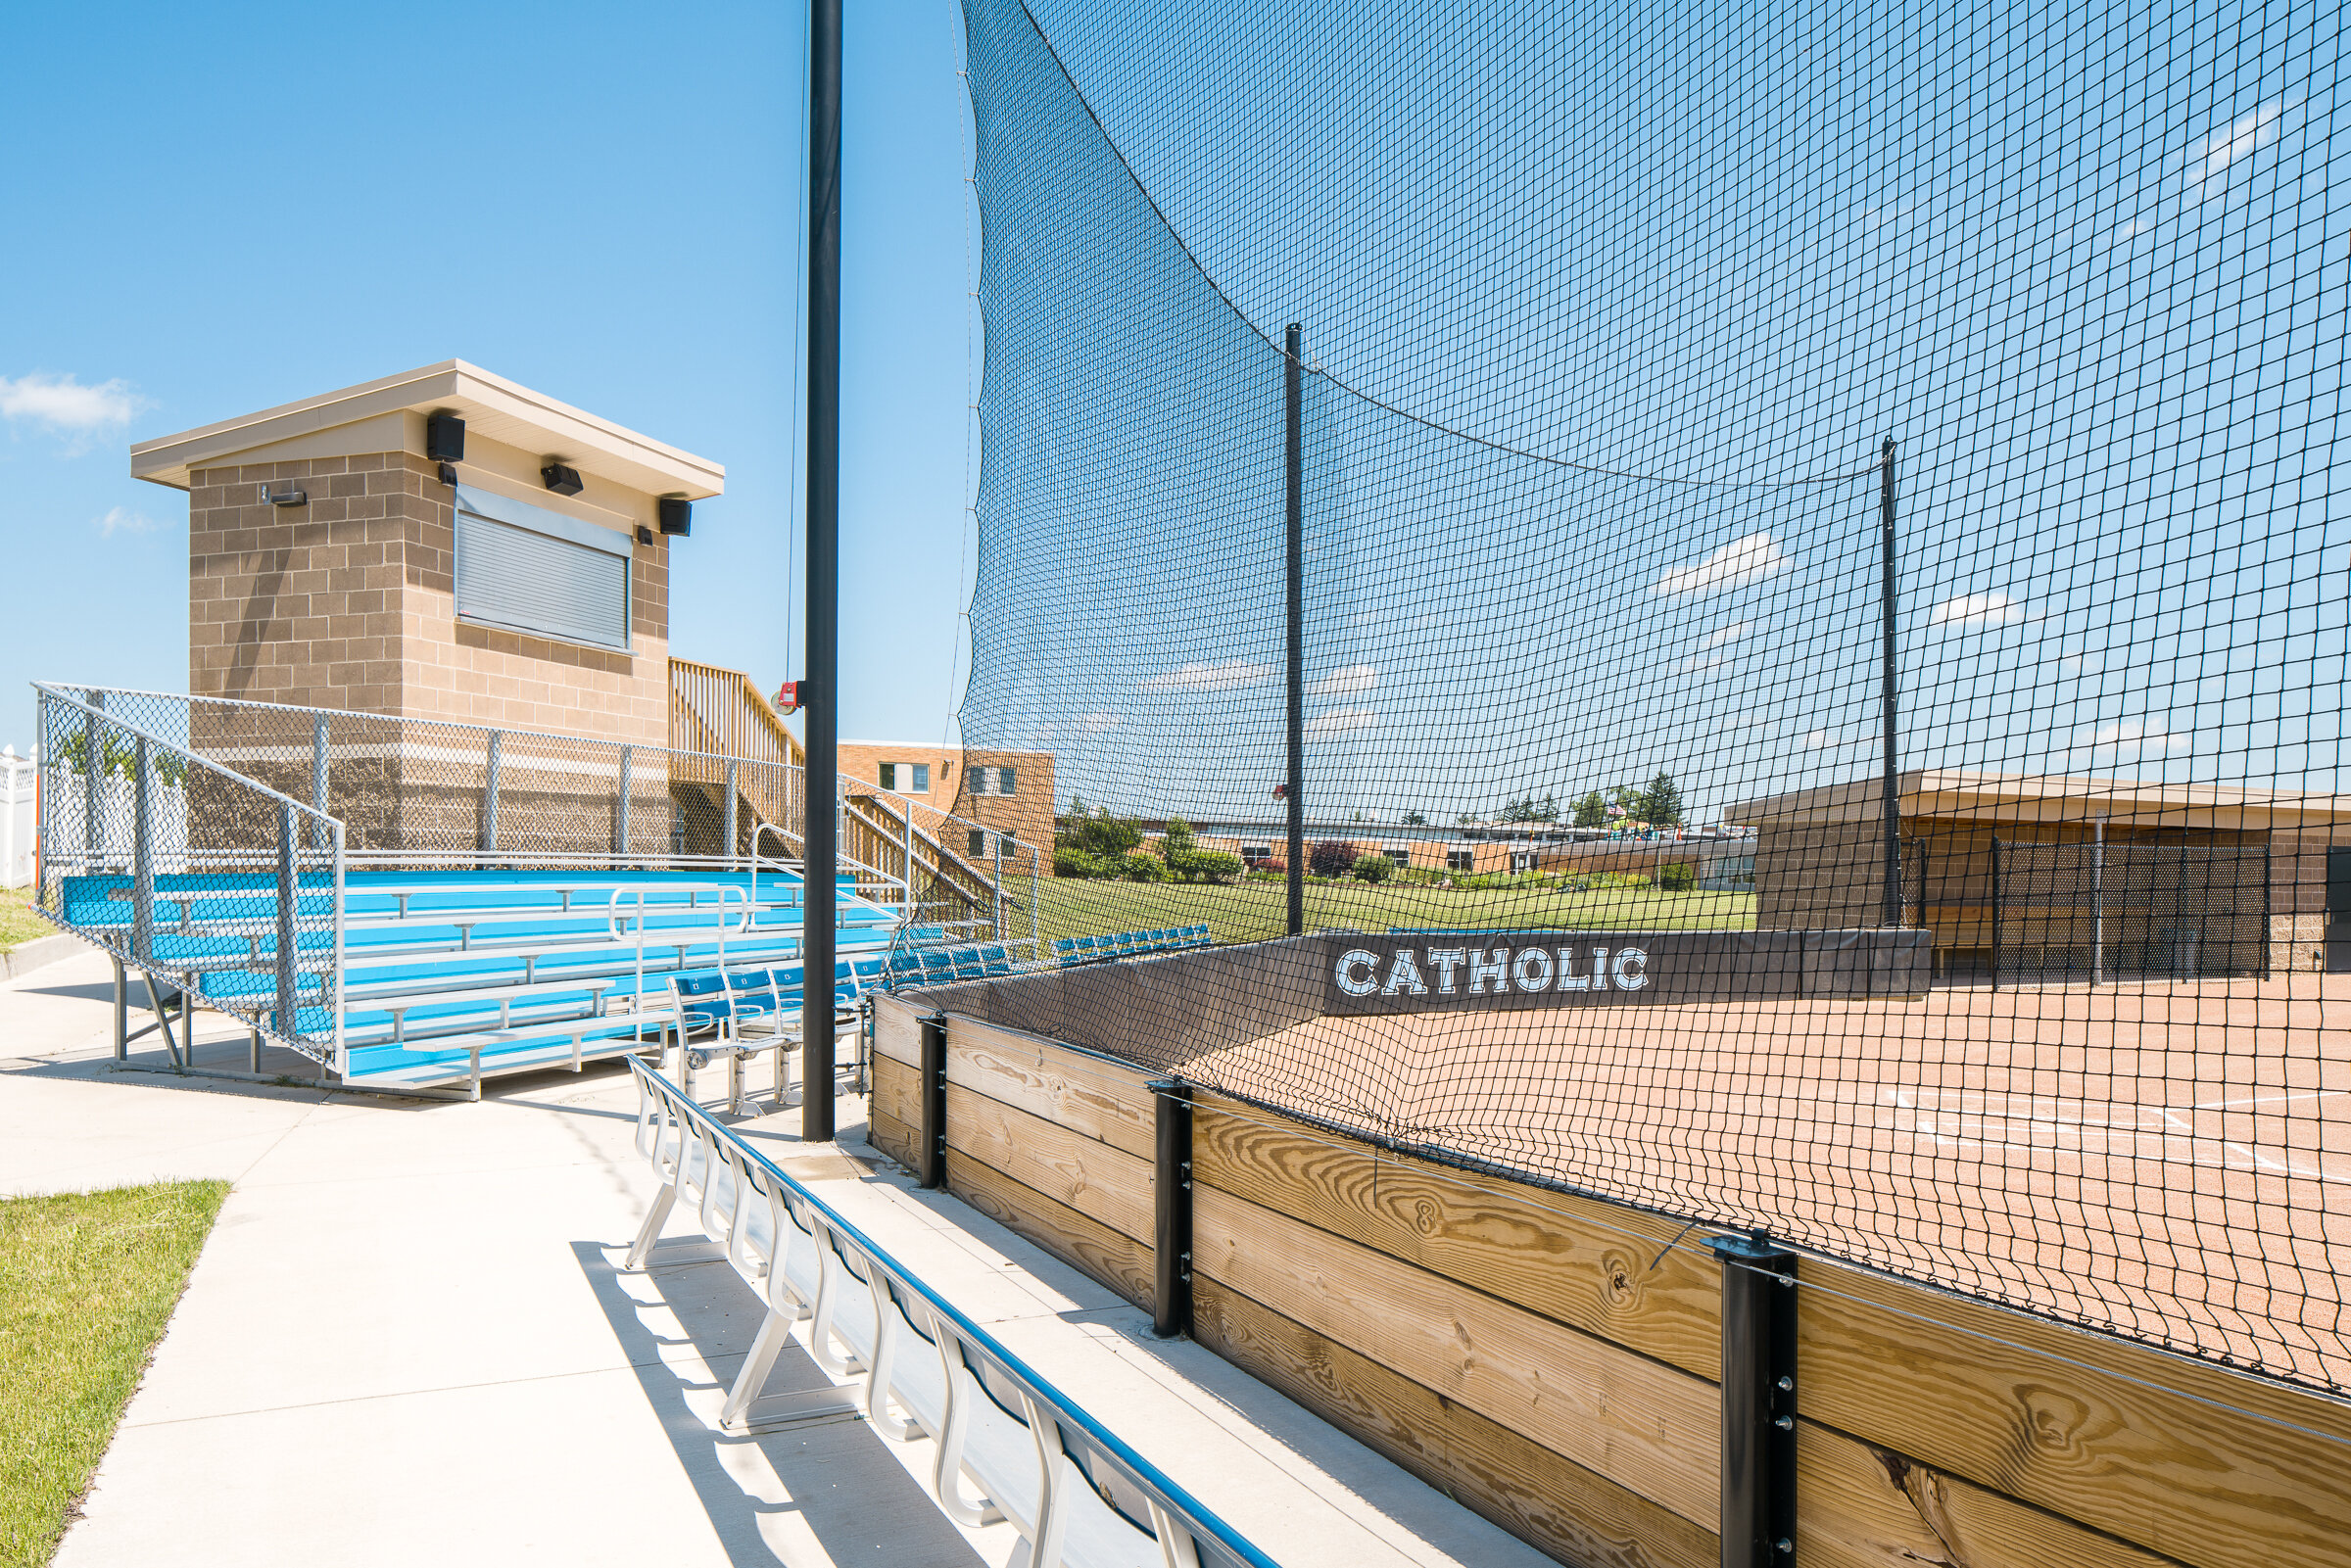 Lansing_Catholic_Central-09.jpg